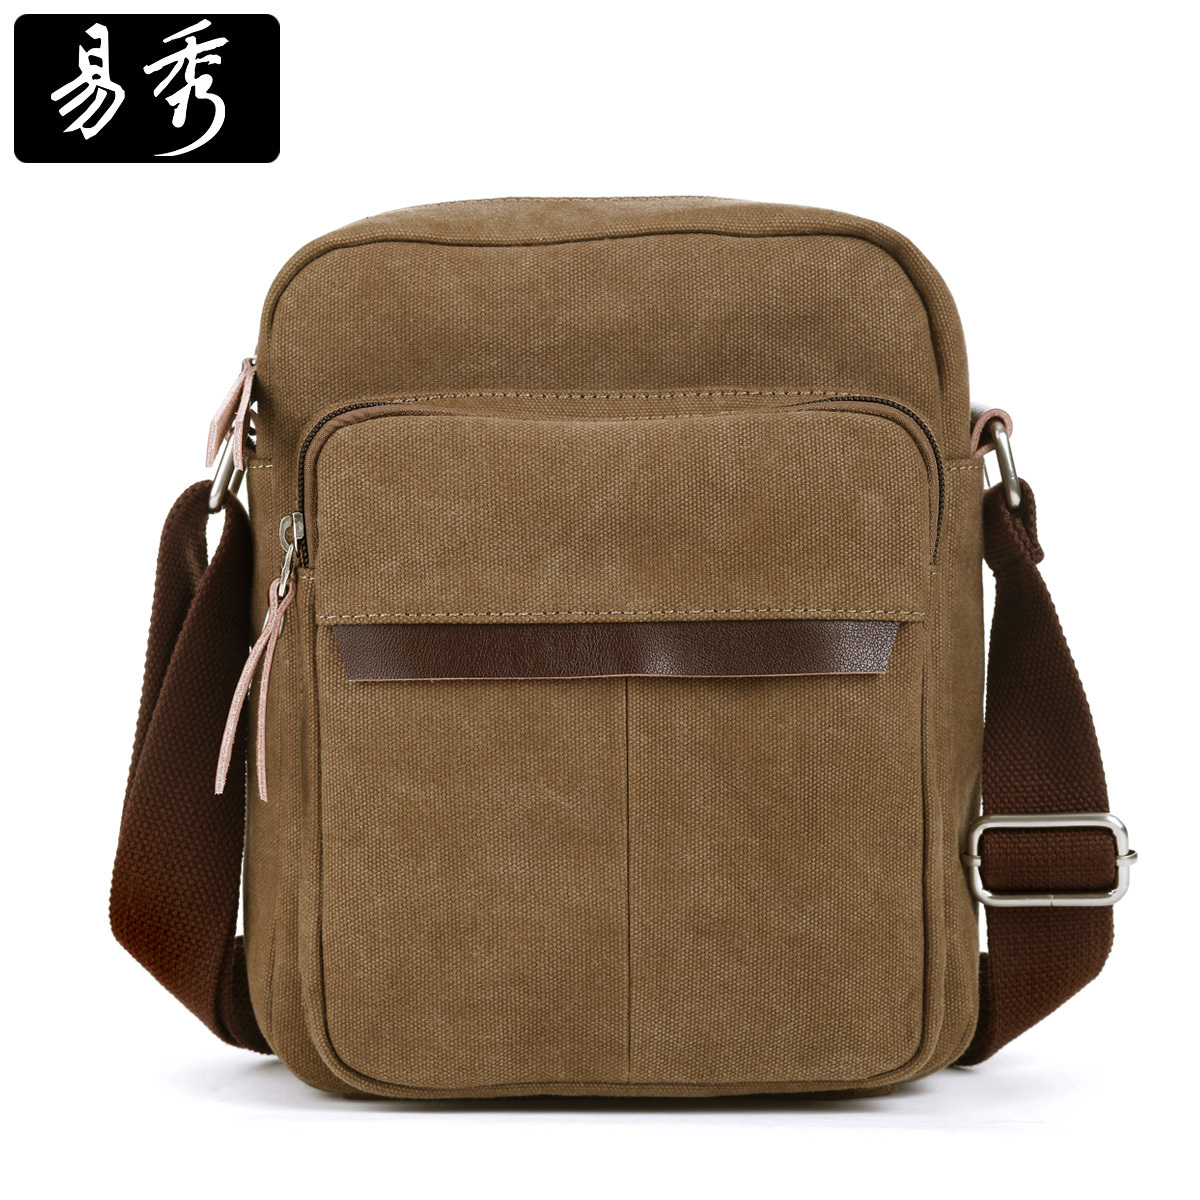 9632f35fcb Get Quotations · Canvas man bag one shoulder cross-body 2014 male small bag  casual male bag man